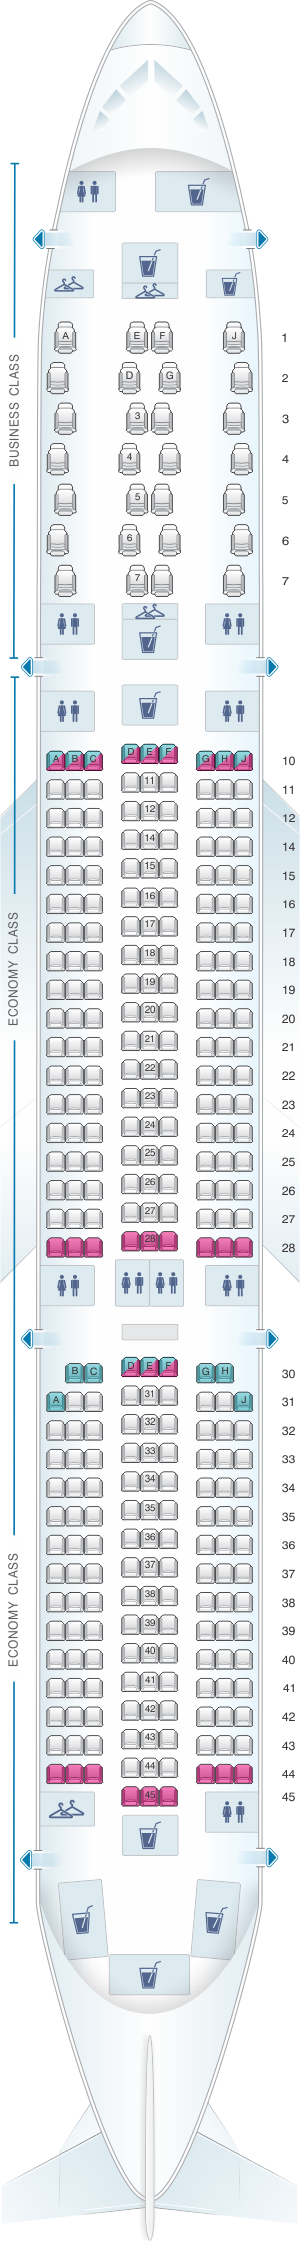 Seat map for Air Mauritius Airbus A350 900